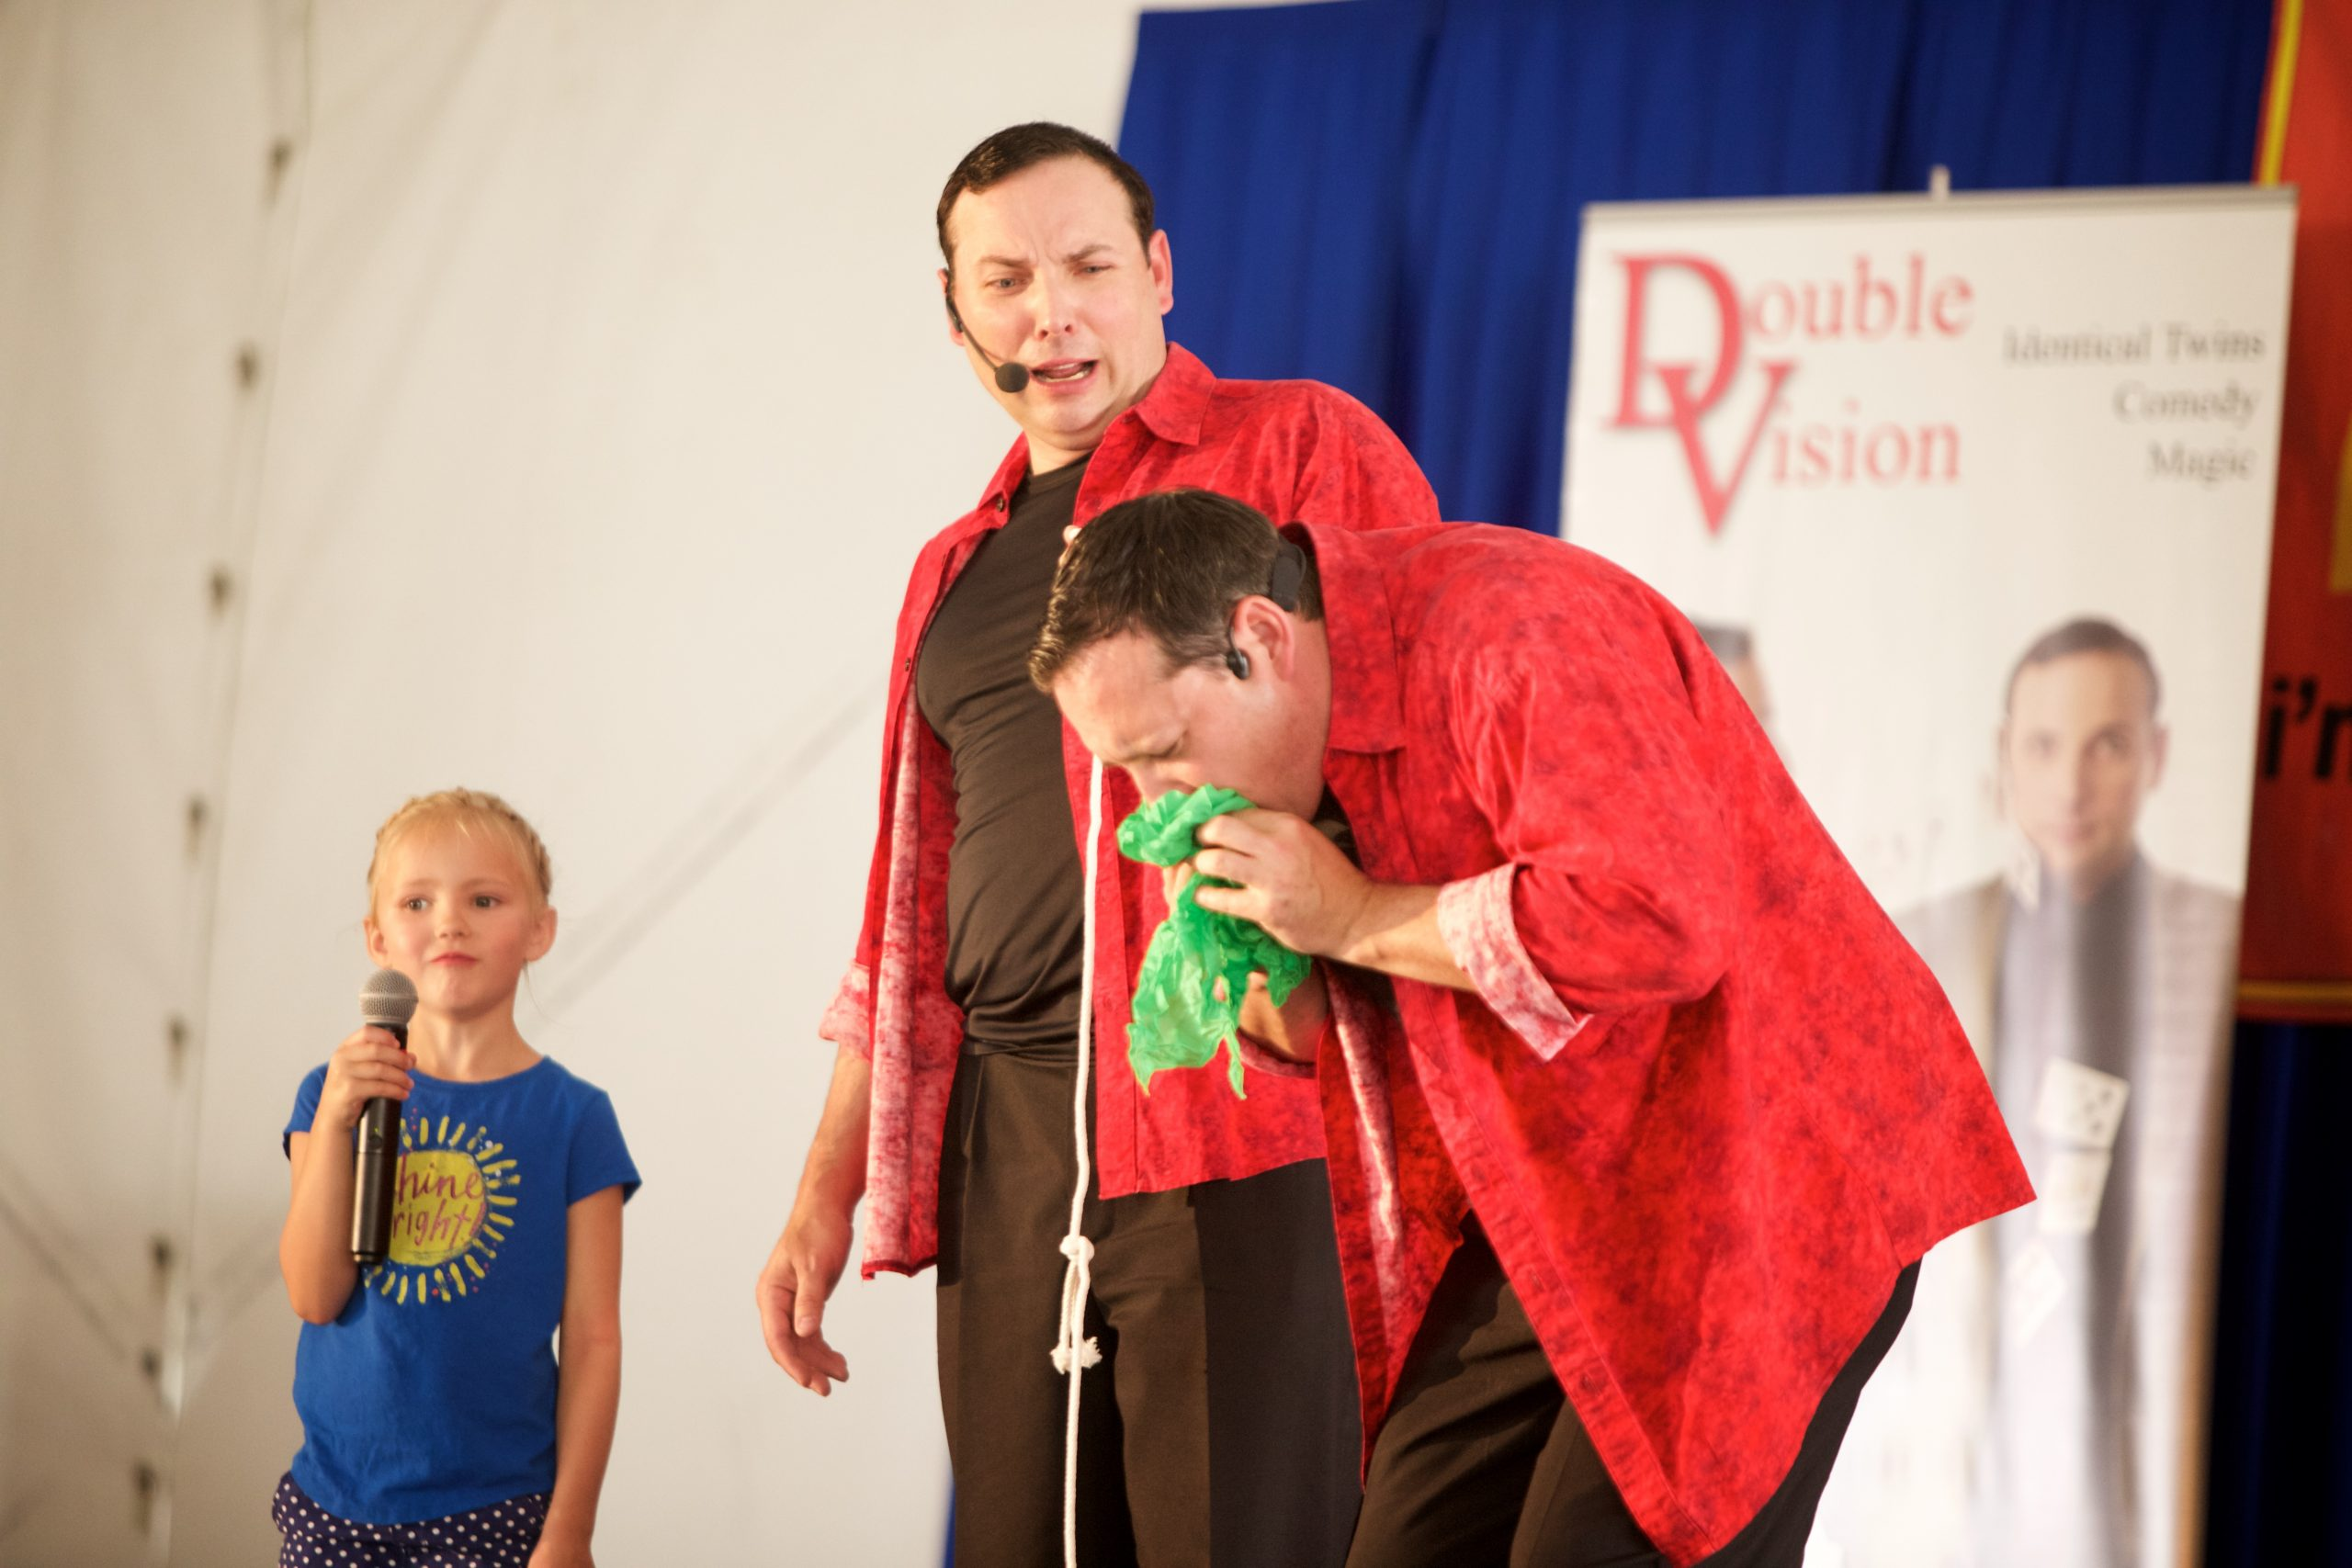 'Double Vision' is Magic & Comedy Show